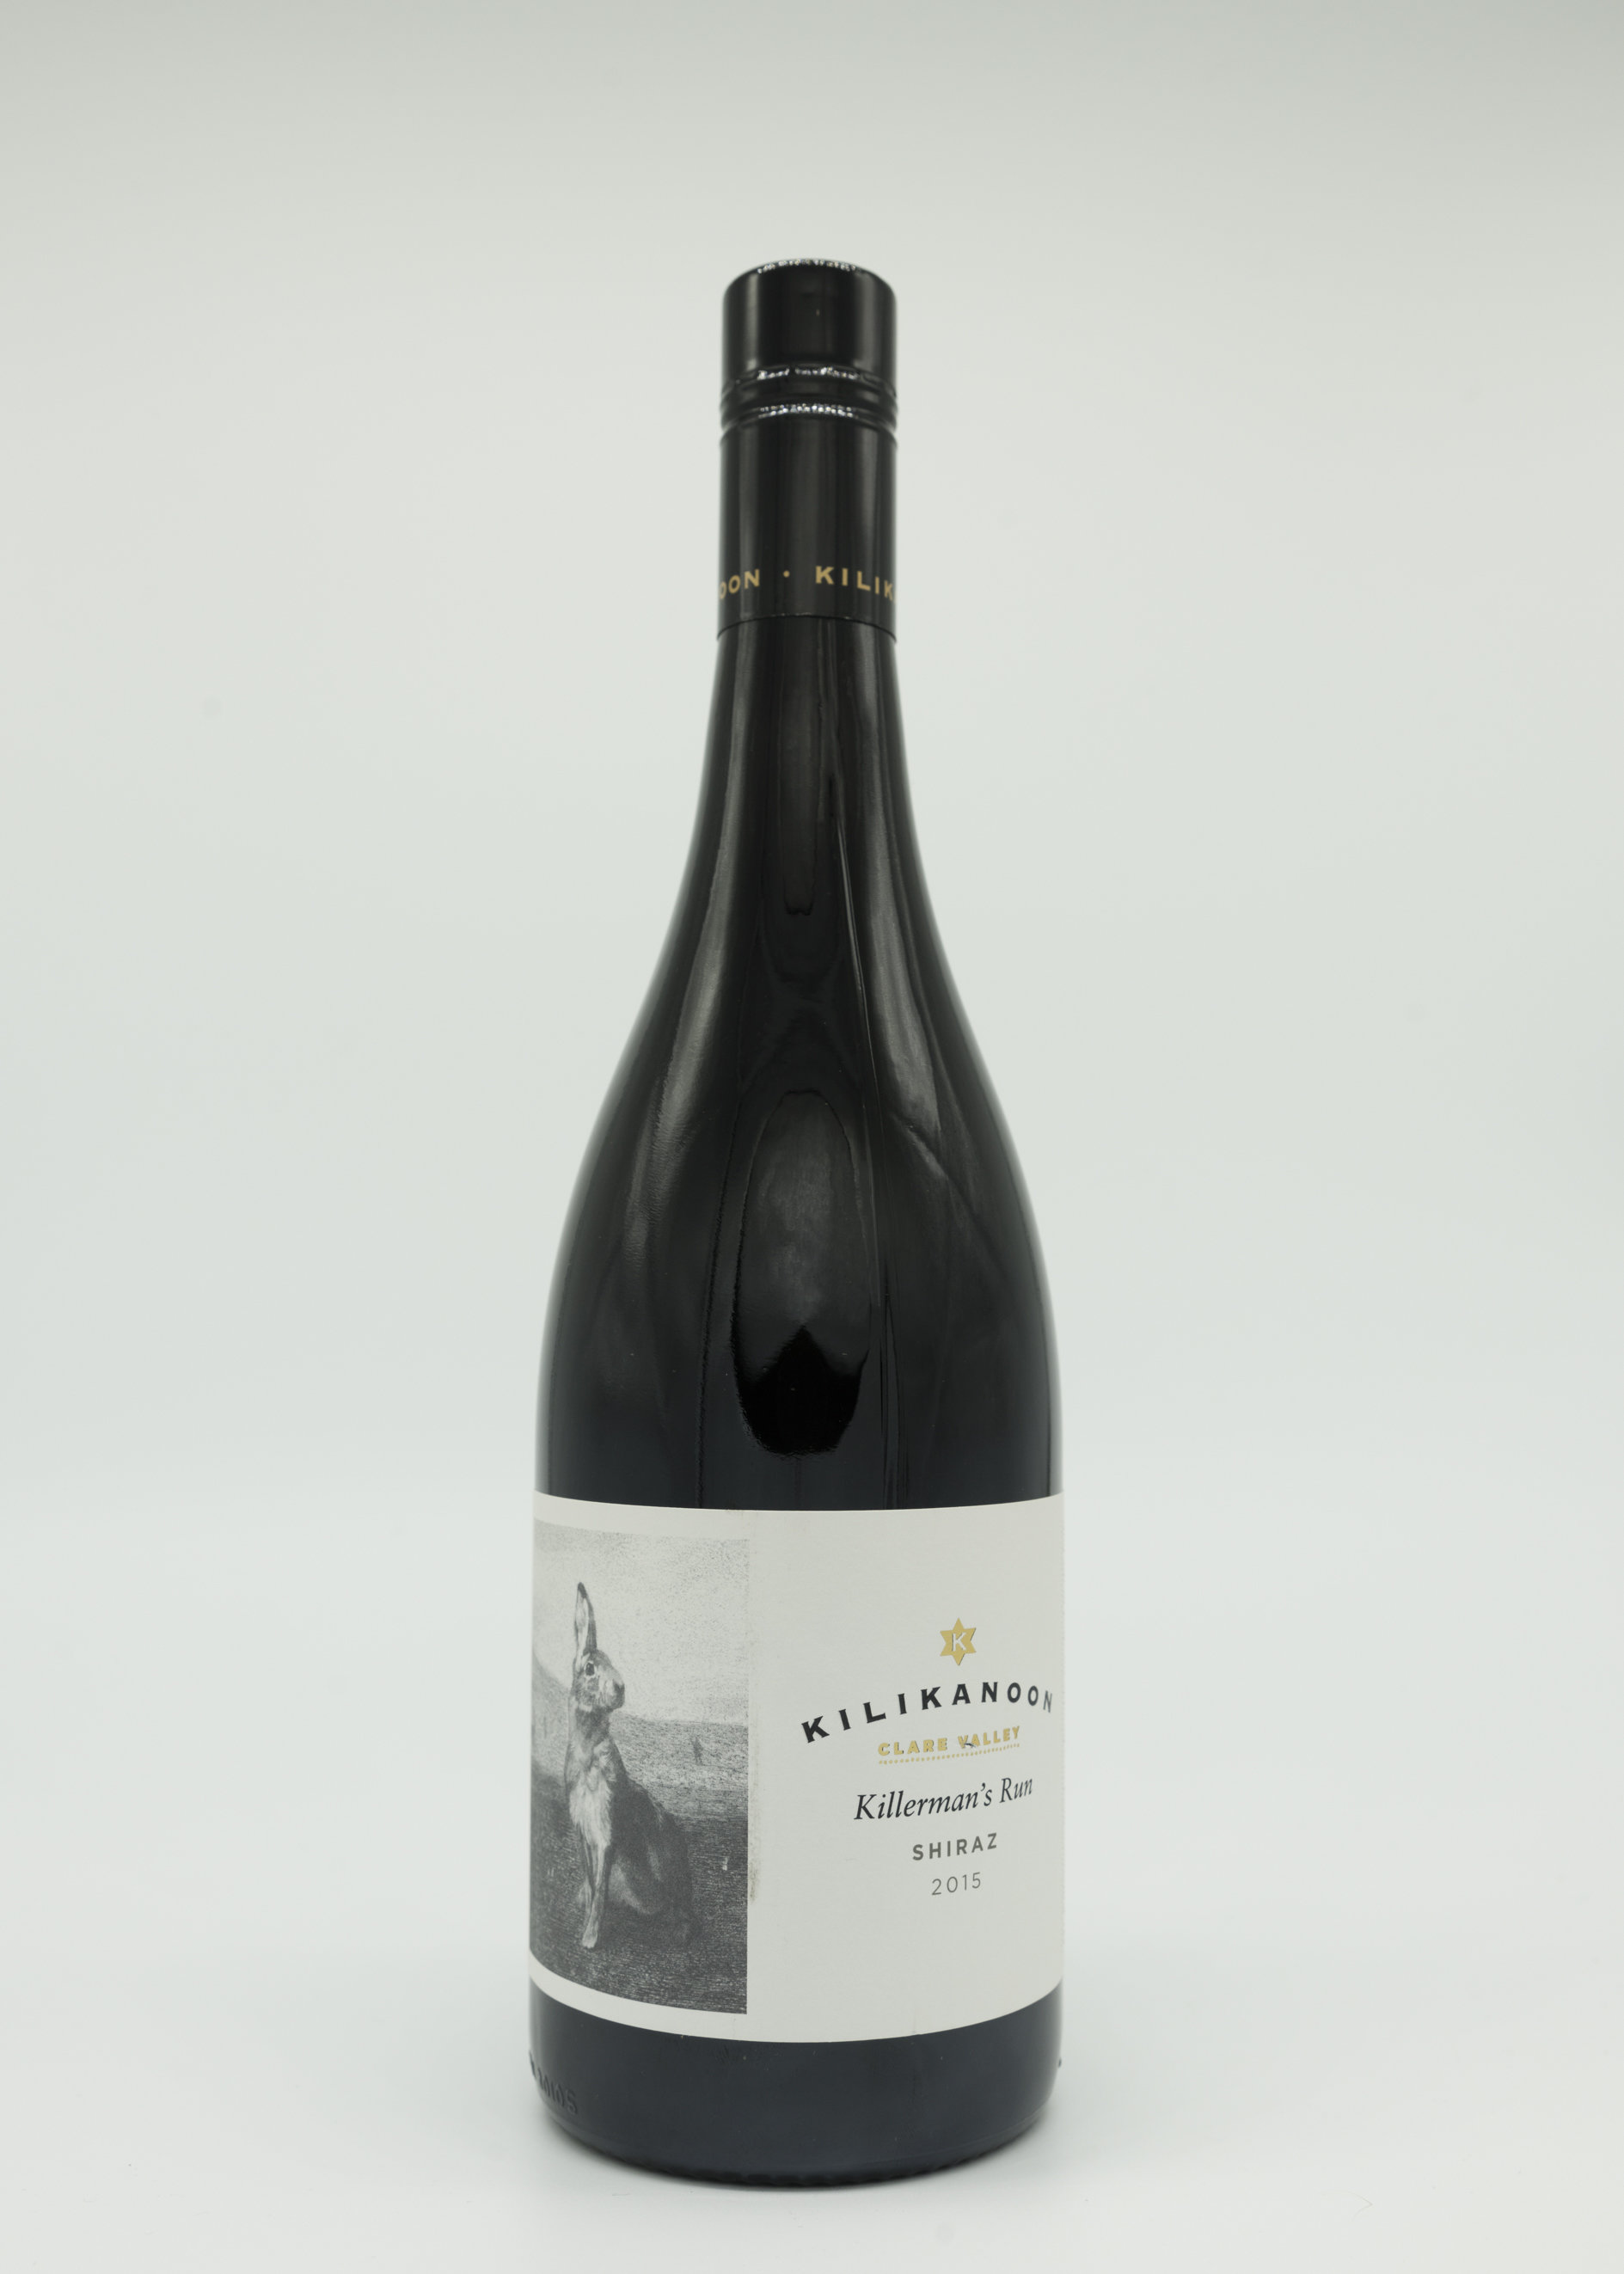 Shiraz 'Killerman's Run' Kilikanoon, 2016 00043